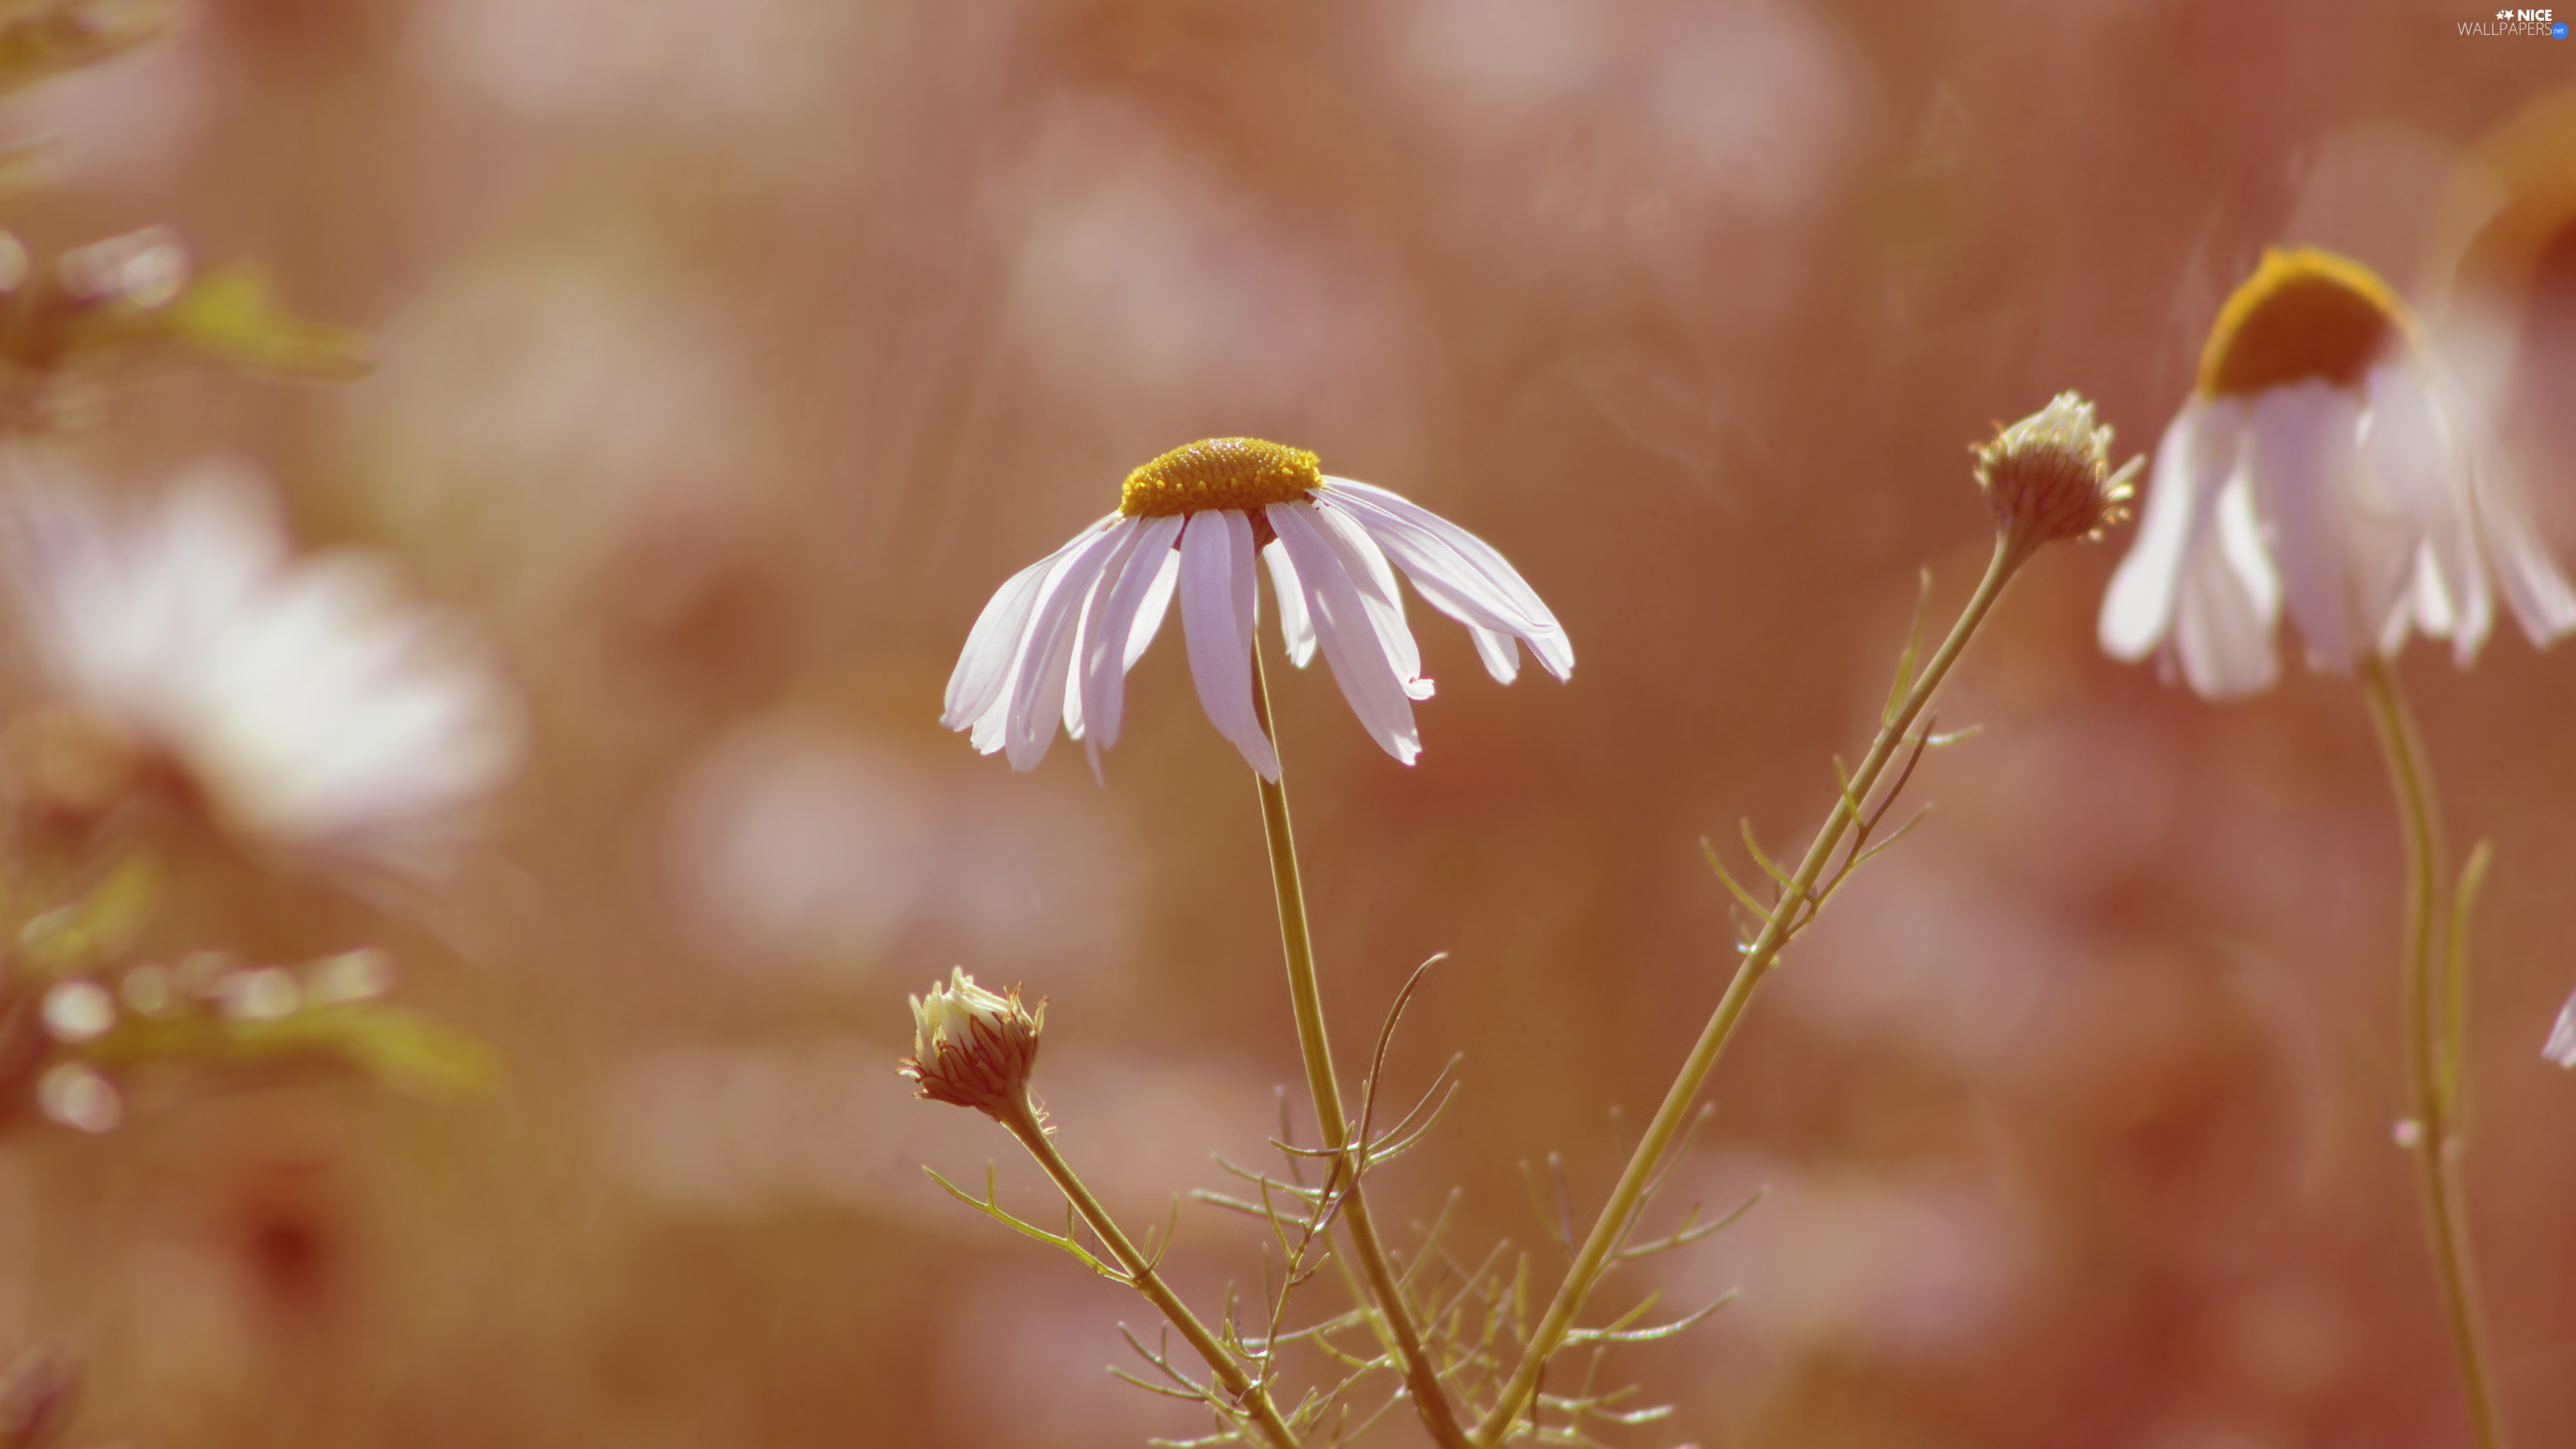 rapprochement, blurry background, chamomile, Buds, flower